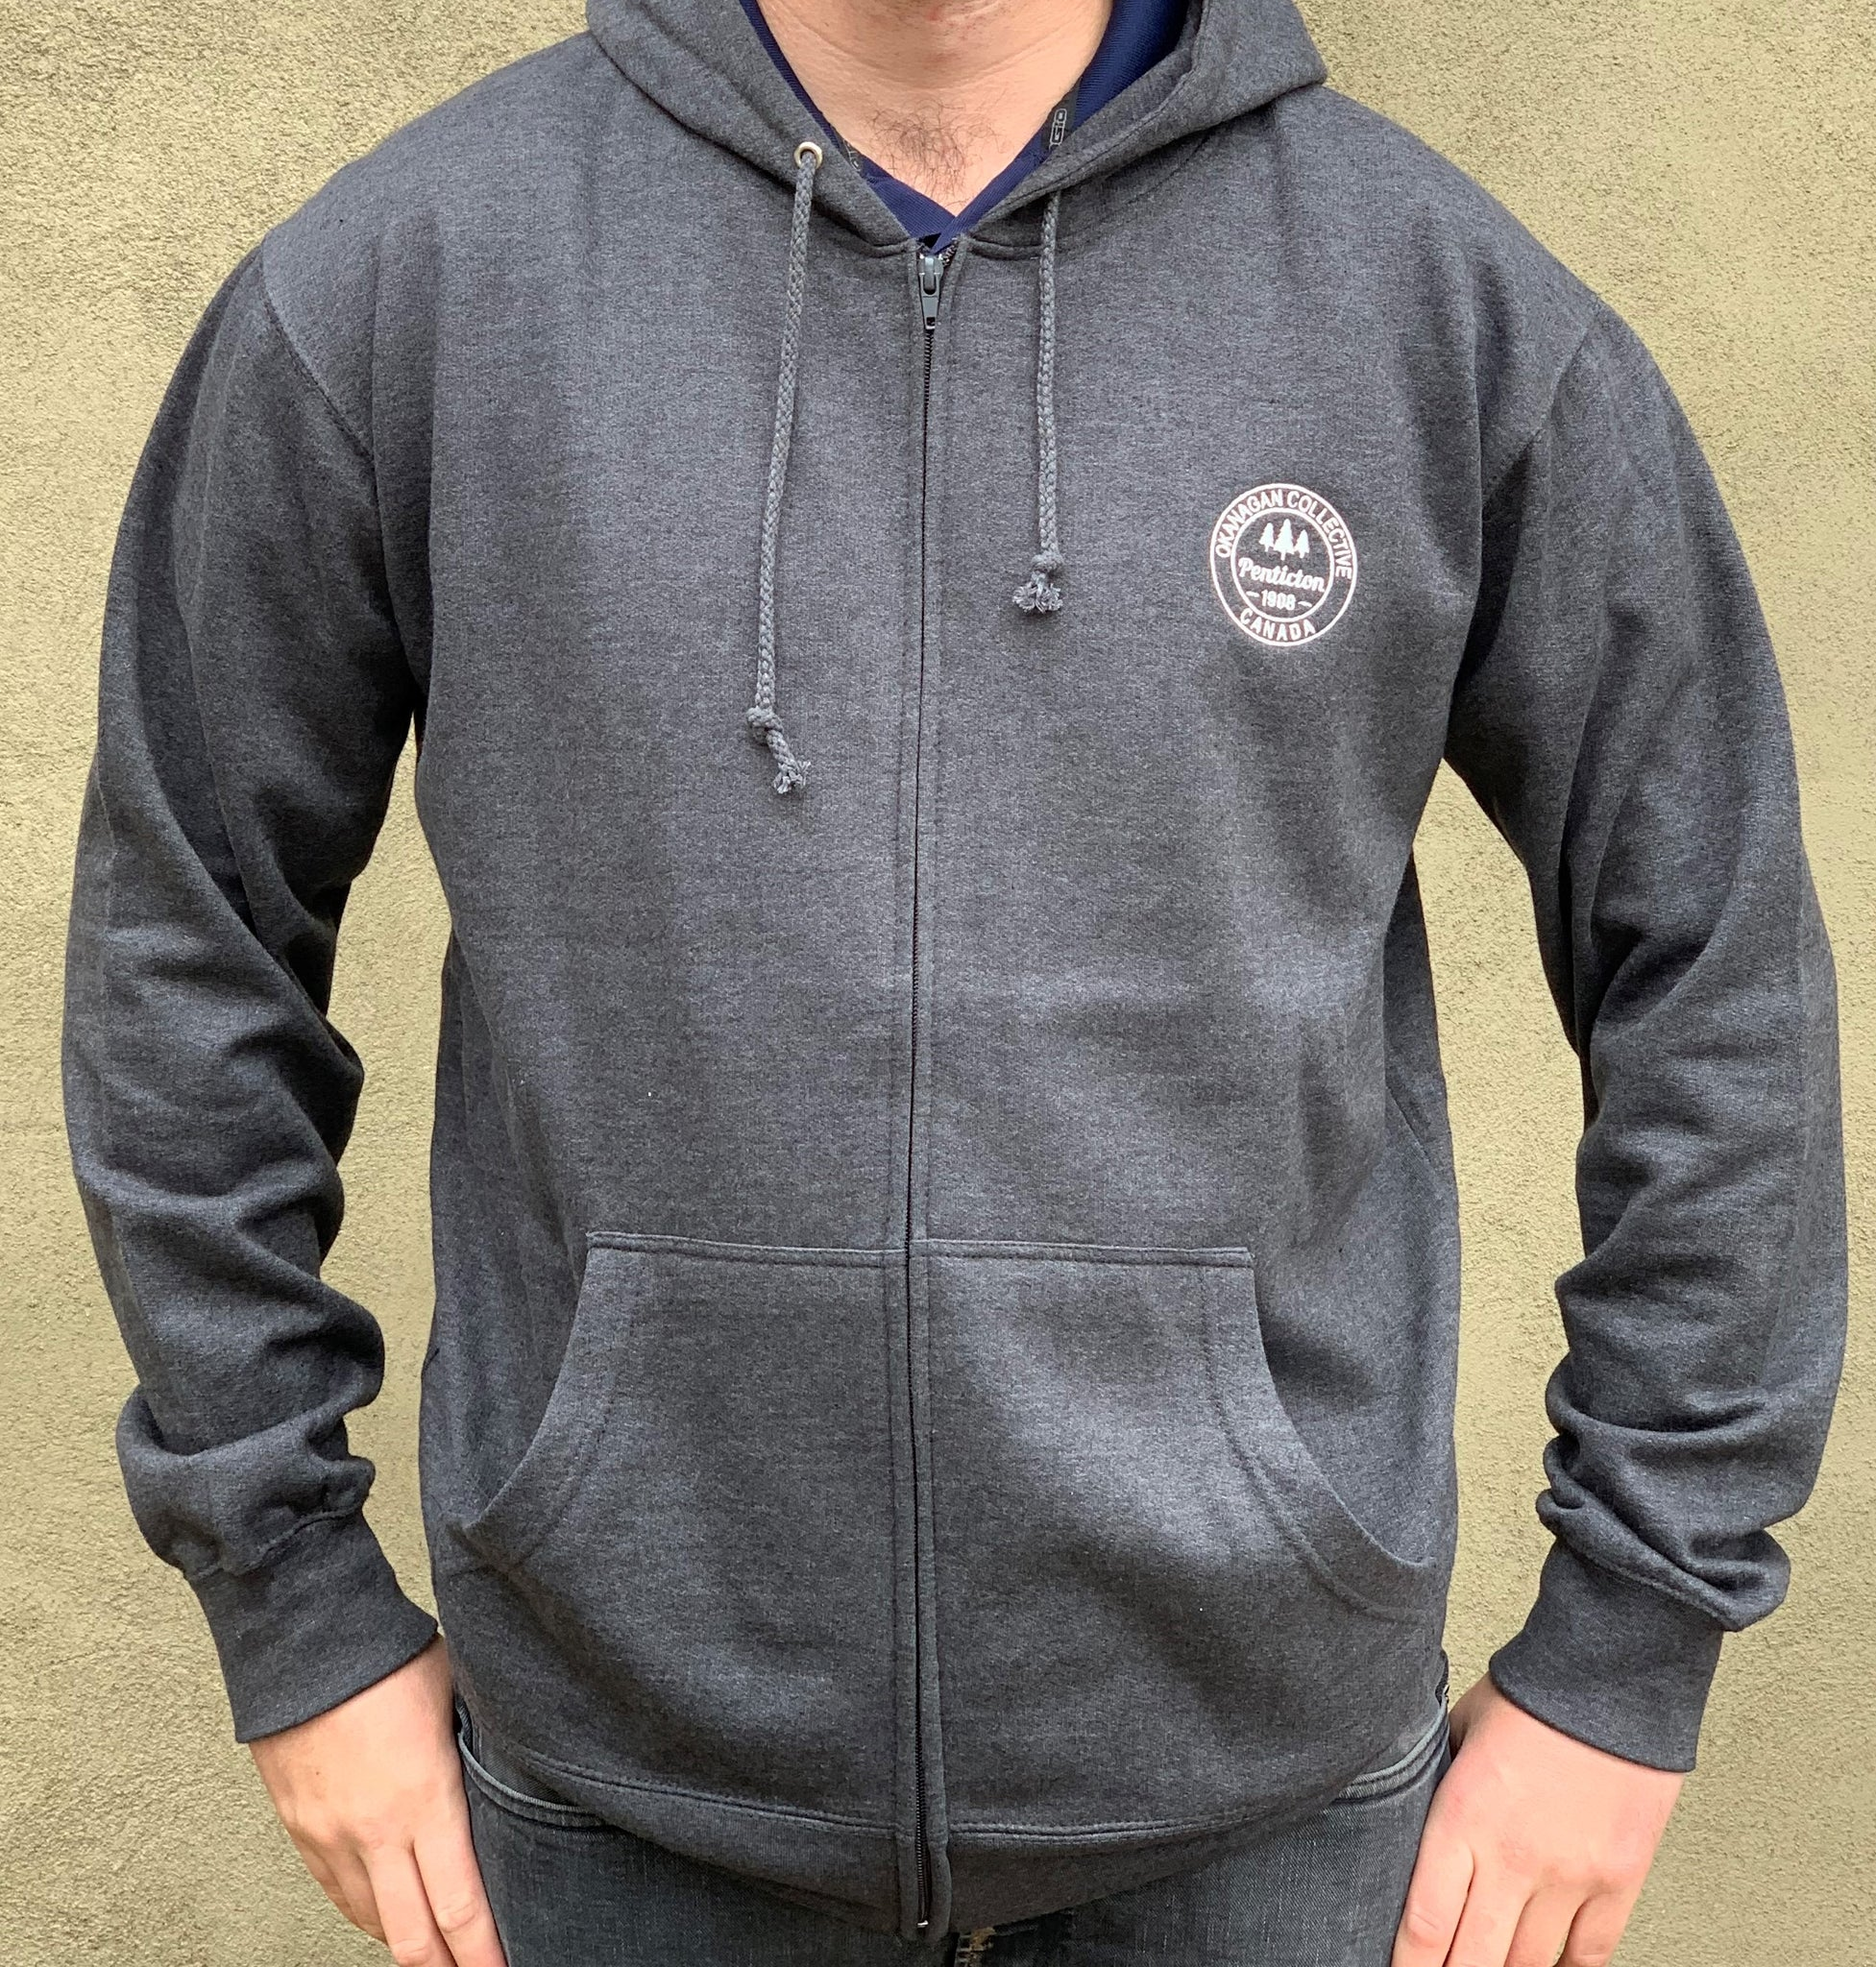 Okanagan Collective Hoodie - Penticton Visitor Centre